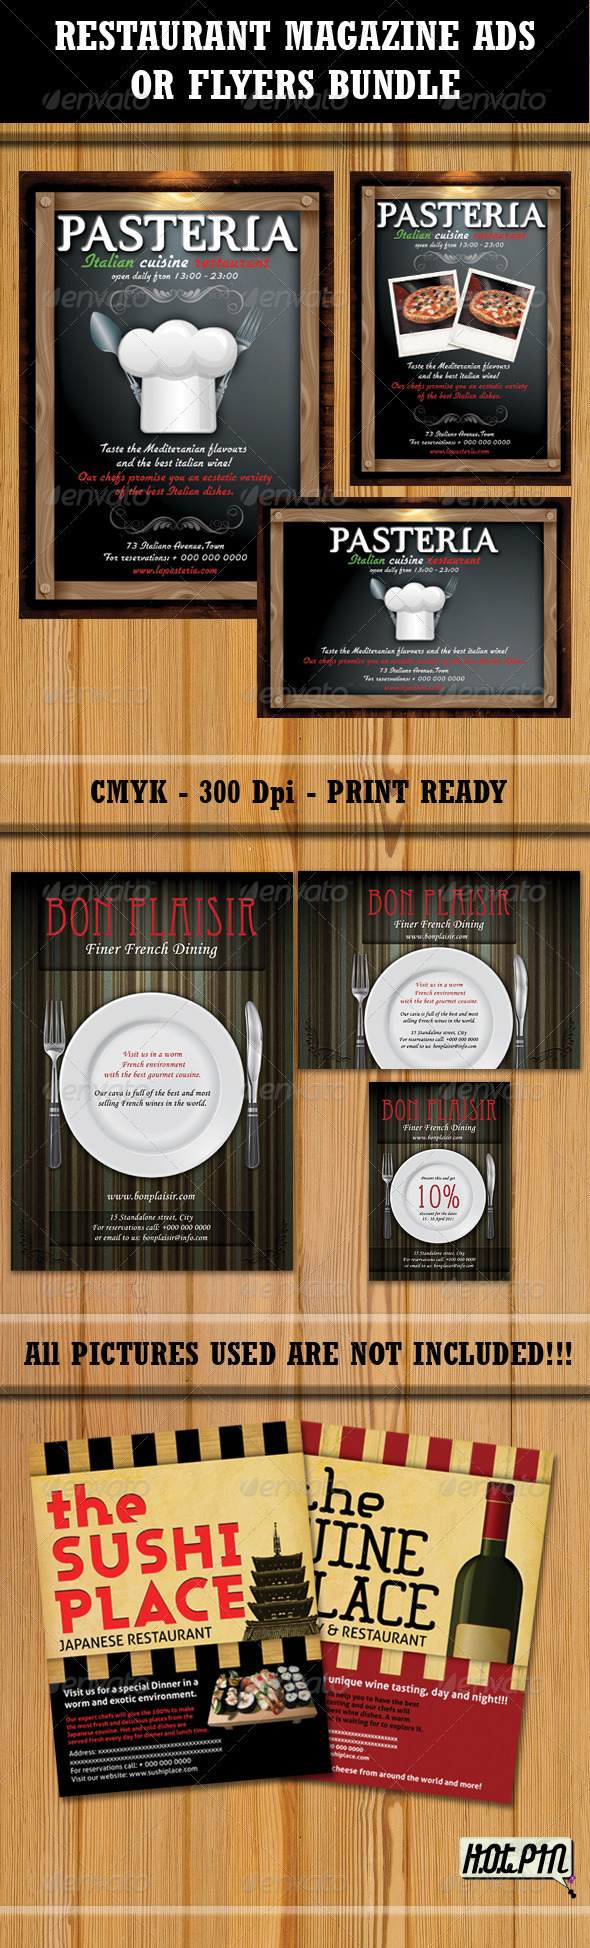 Restaurant Magazine Ads-Flyers Bundle